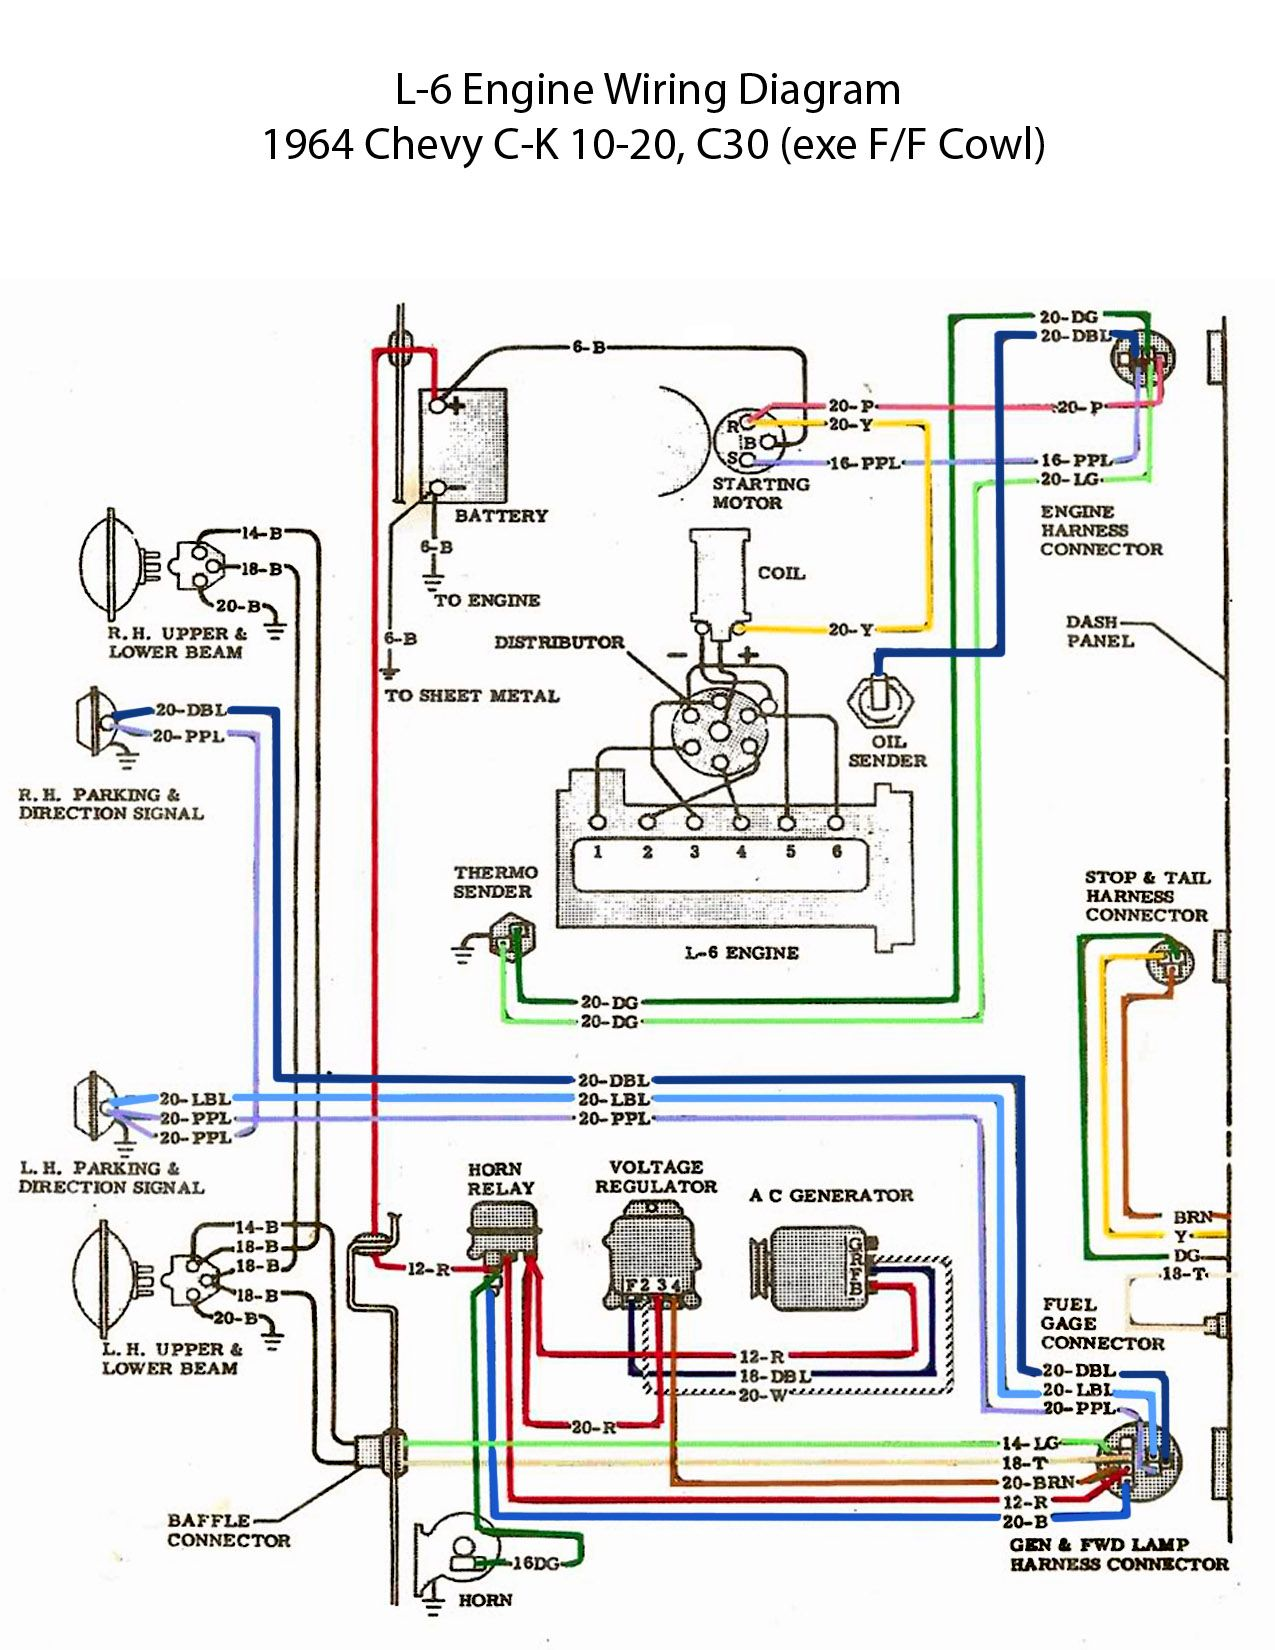 electric l 6 engine wiring diagram 60s chevy c10 wiring rh pinterest com briggs and stratton 16 hp v-twin wiring diagram briggs v-twin wiring diagram